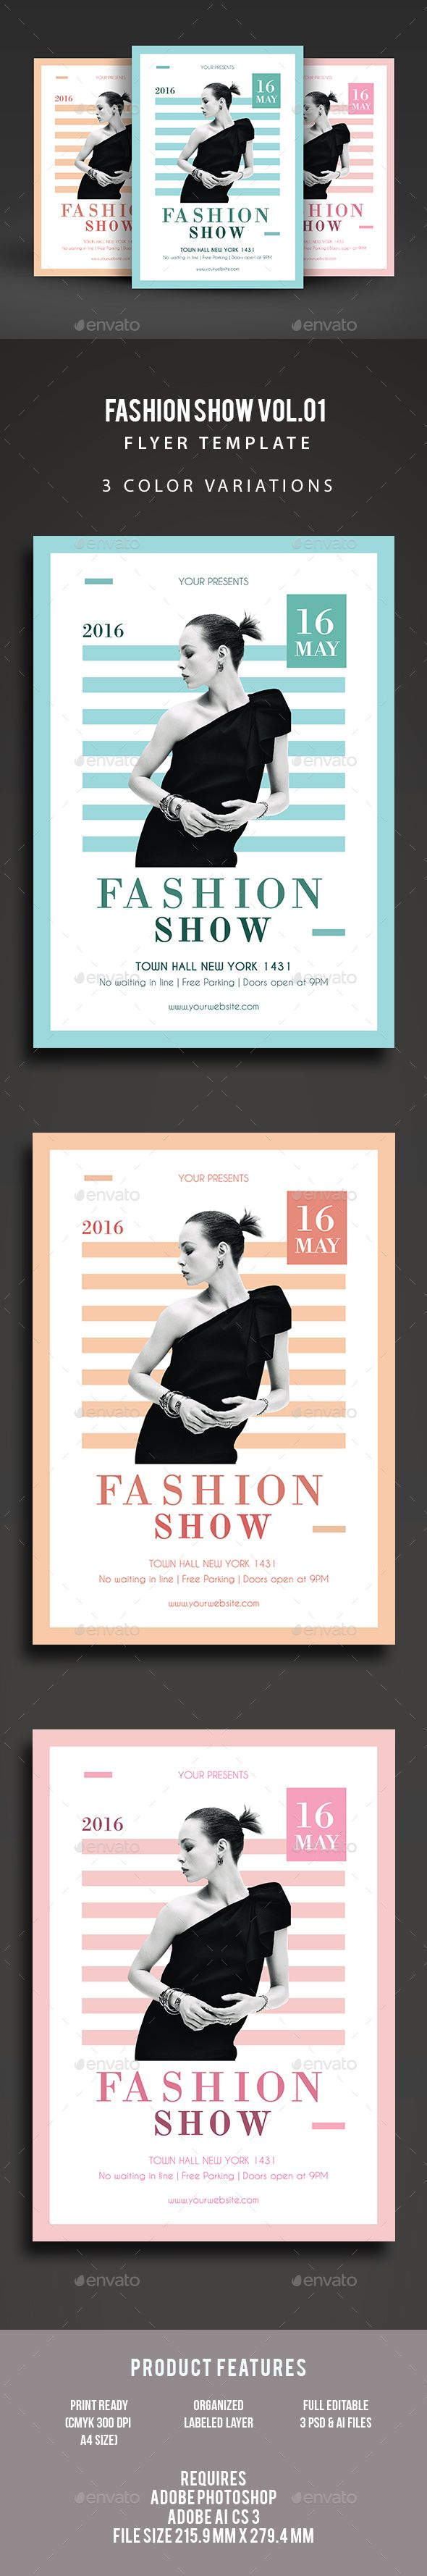 Fashion Show Flyer Template PSD, Vector AI. Download here: http://graphicriver.net/item/fashion-show-flyer/15741902?ref=ksioks